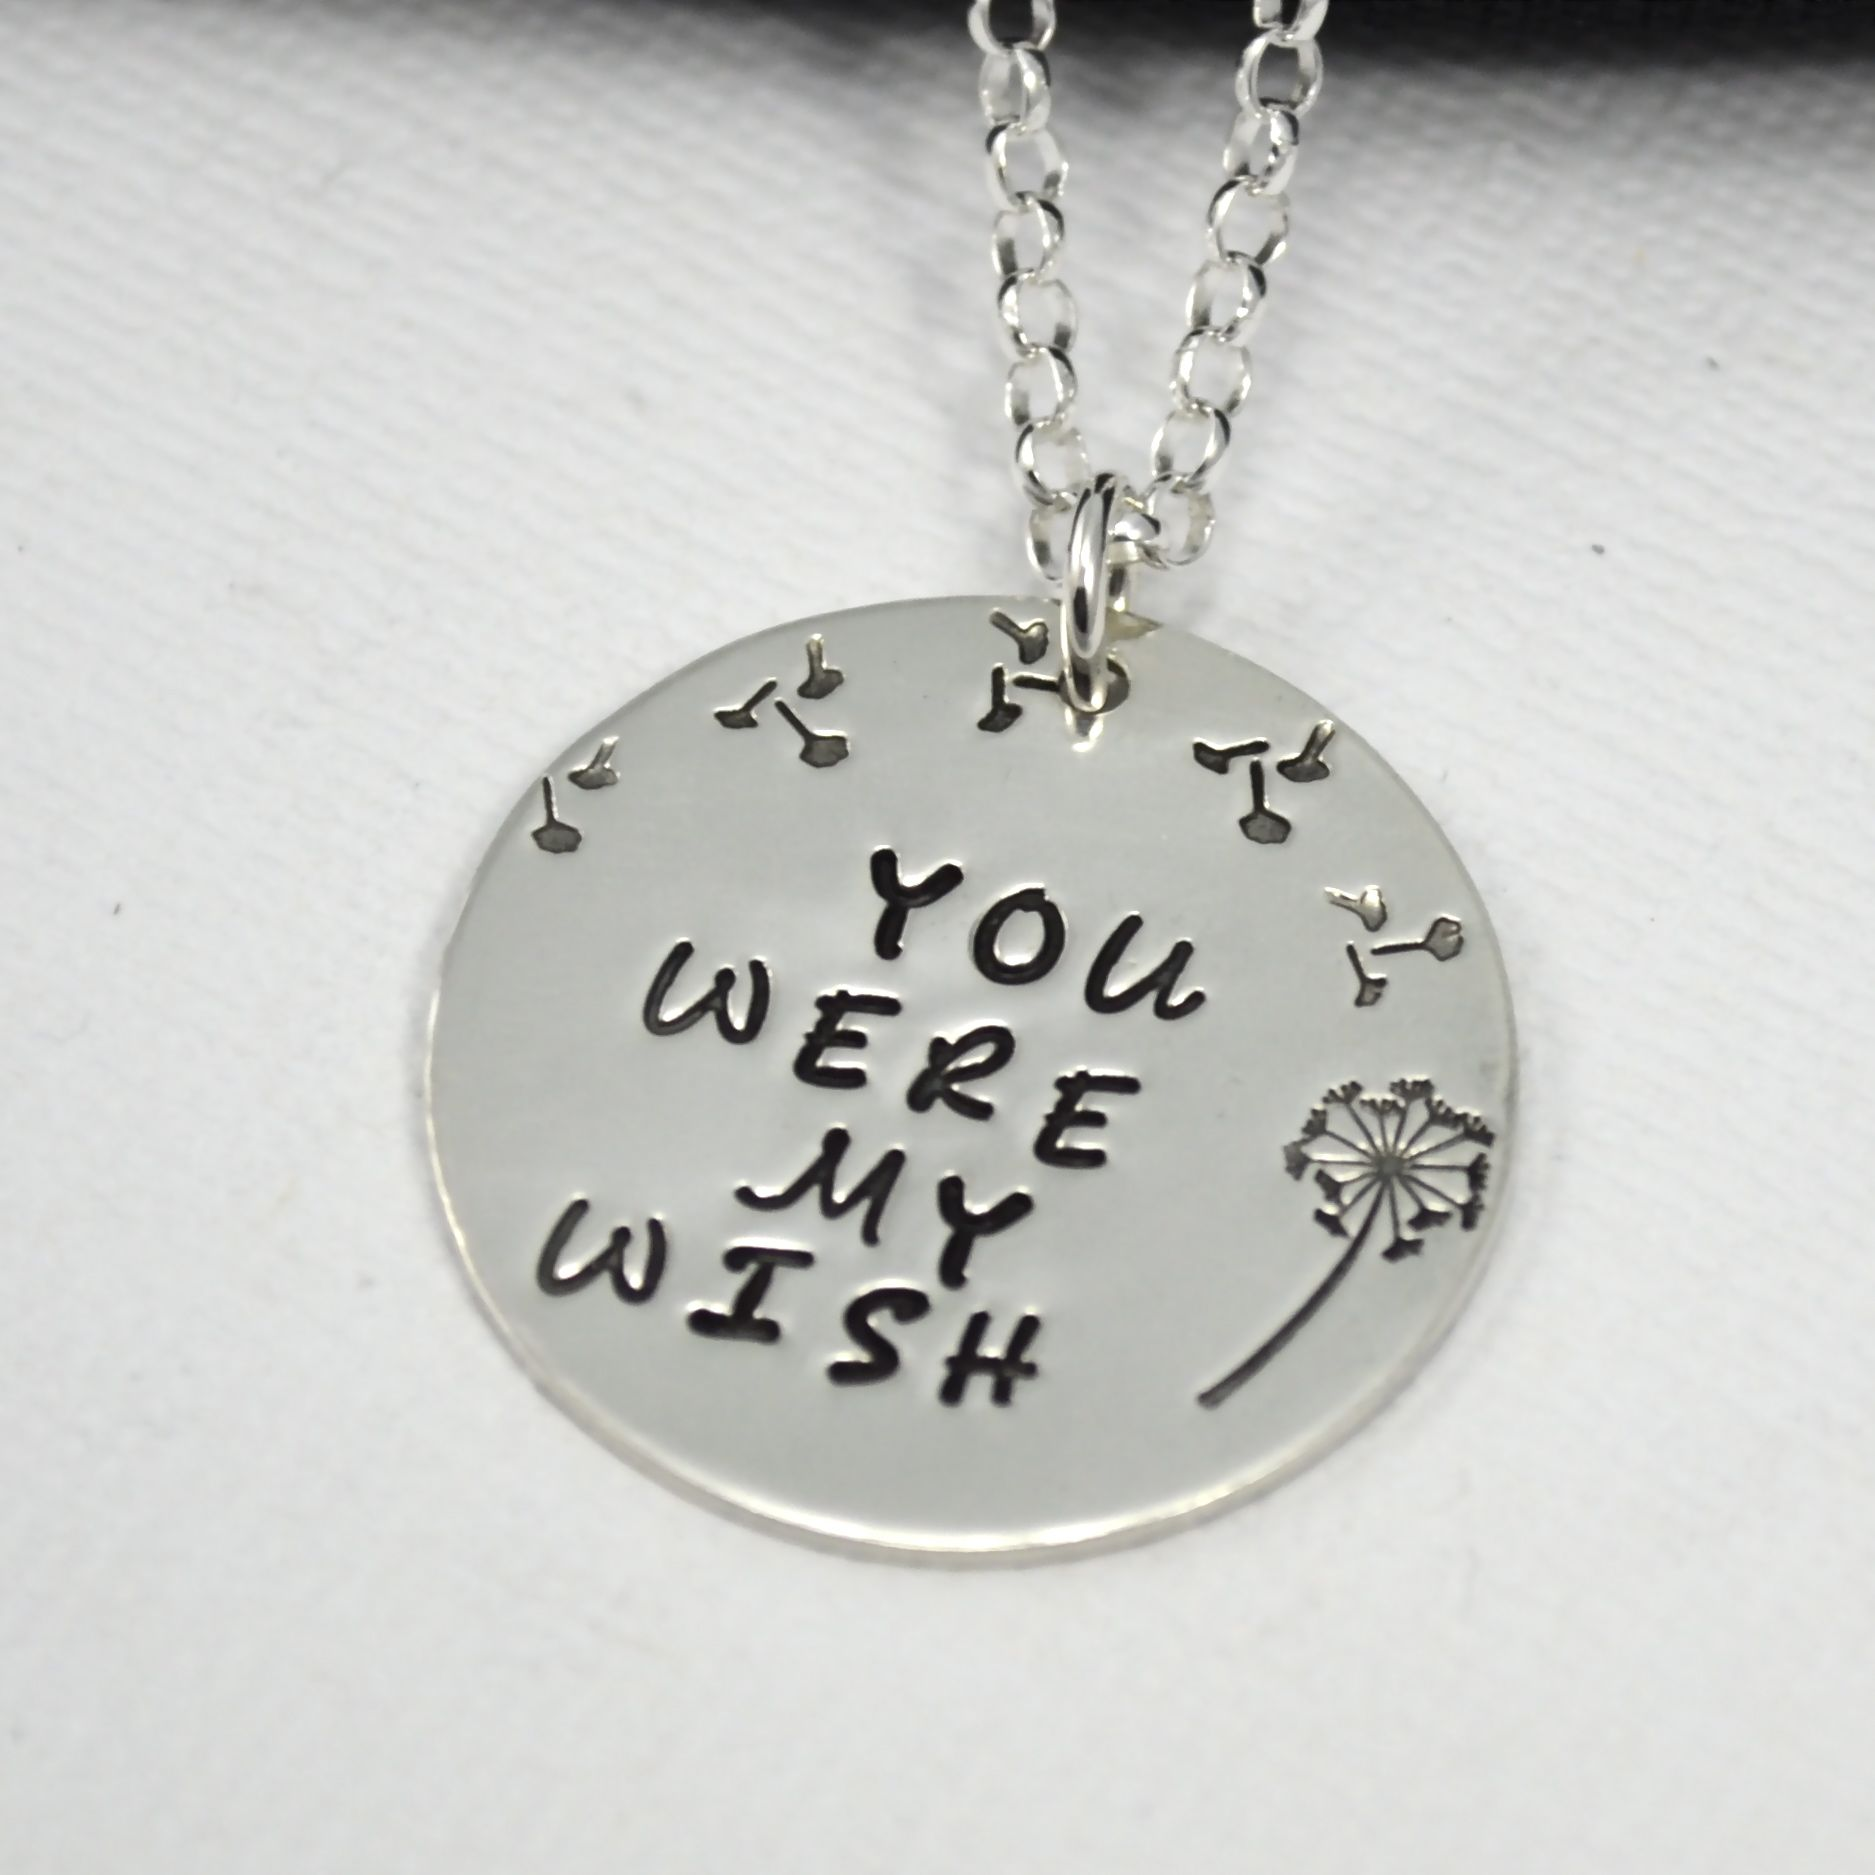 Buy A Hand Made You Were My Wish Dandelion Hand Stamped